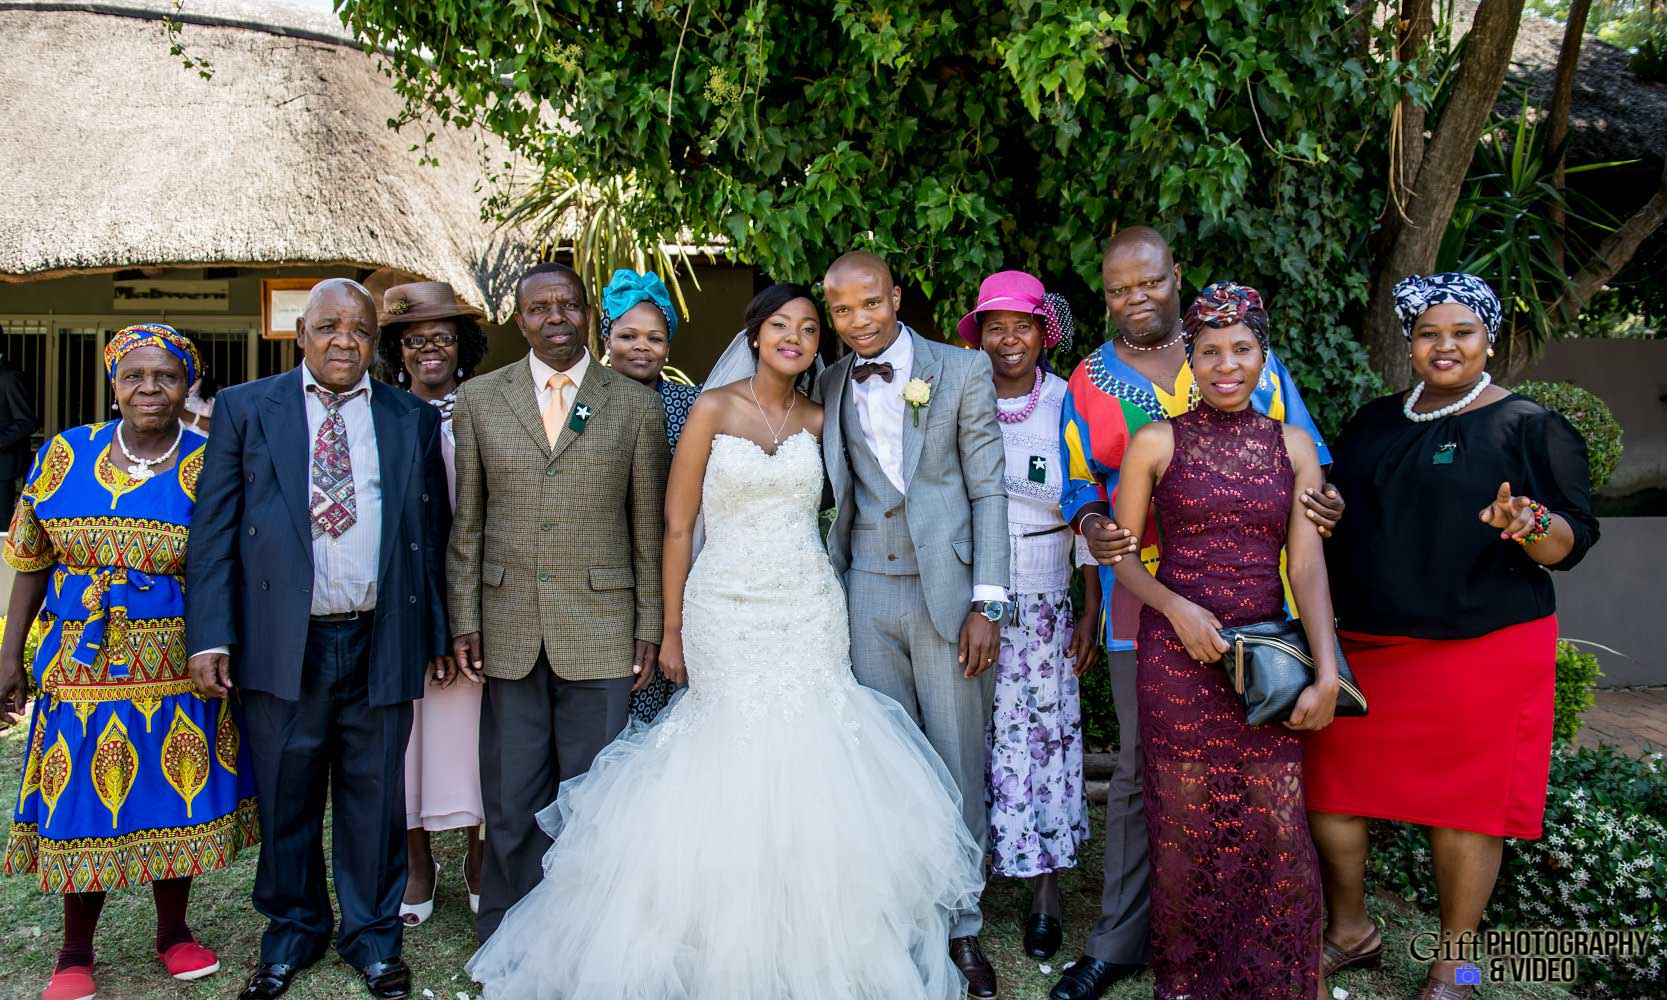 Choene & Sihle Wedding Usambara-41